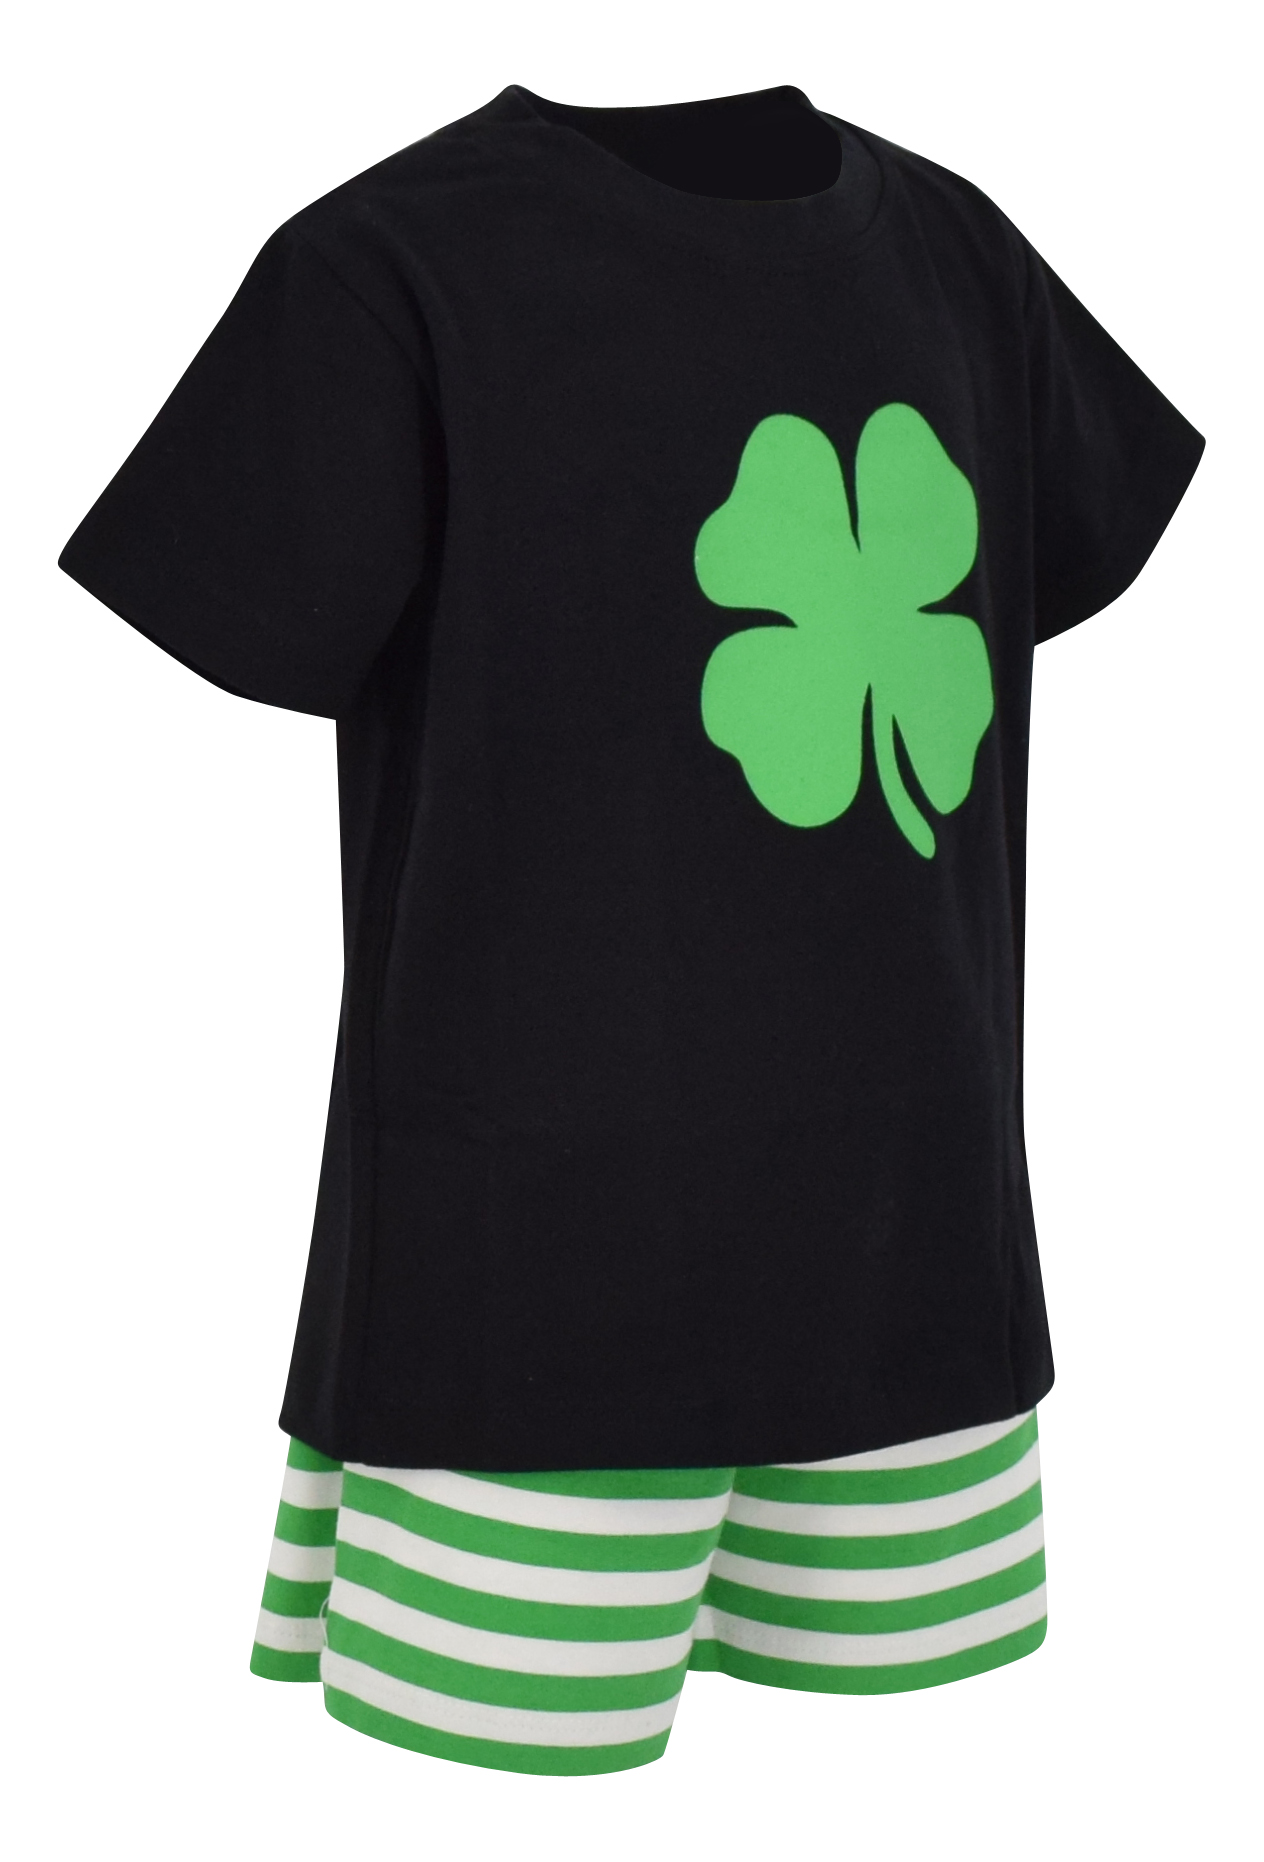 Boys-2-Piece-ST-Patricks-Day-Clover-Outfit-2t-3t-4t-5-6-7-8-Toddler-Kids-Clothes thumbnail 22